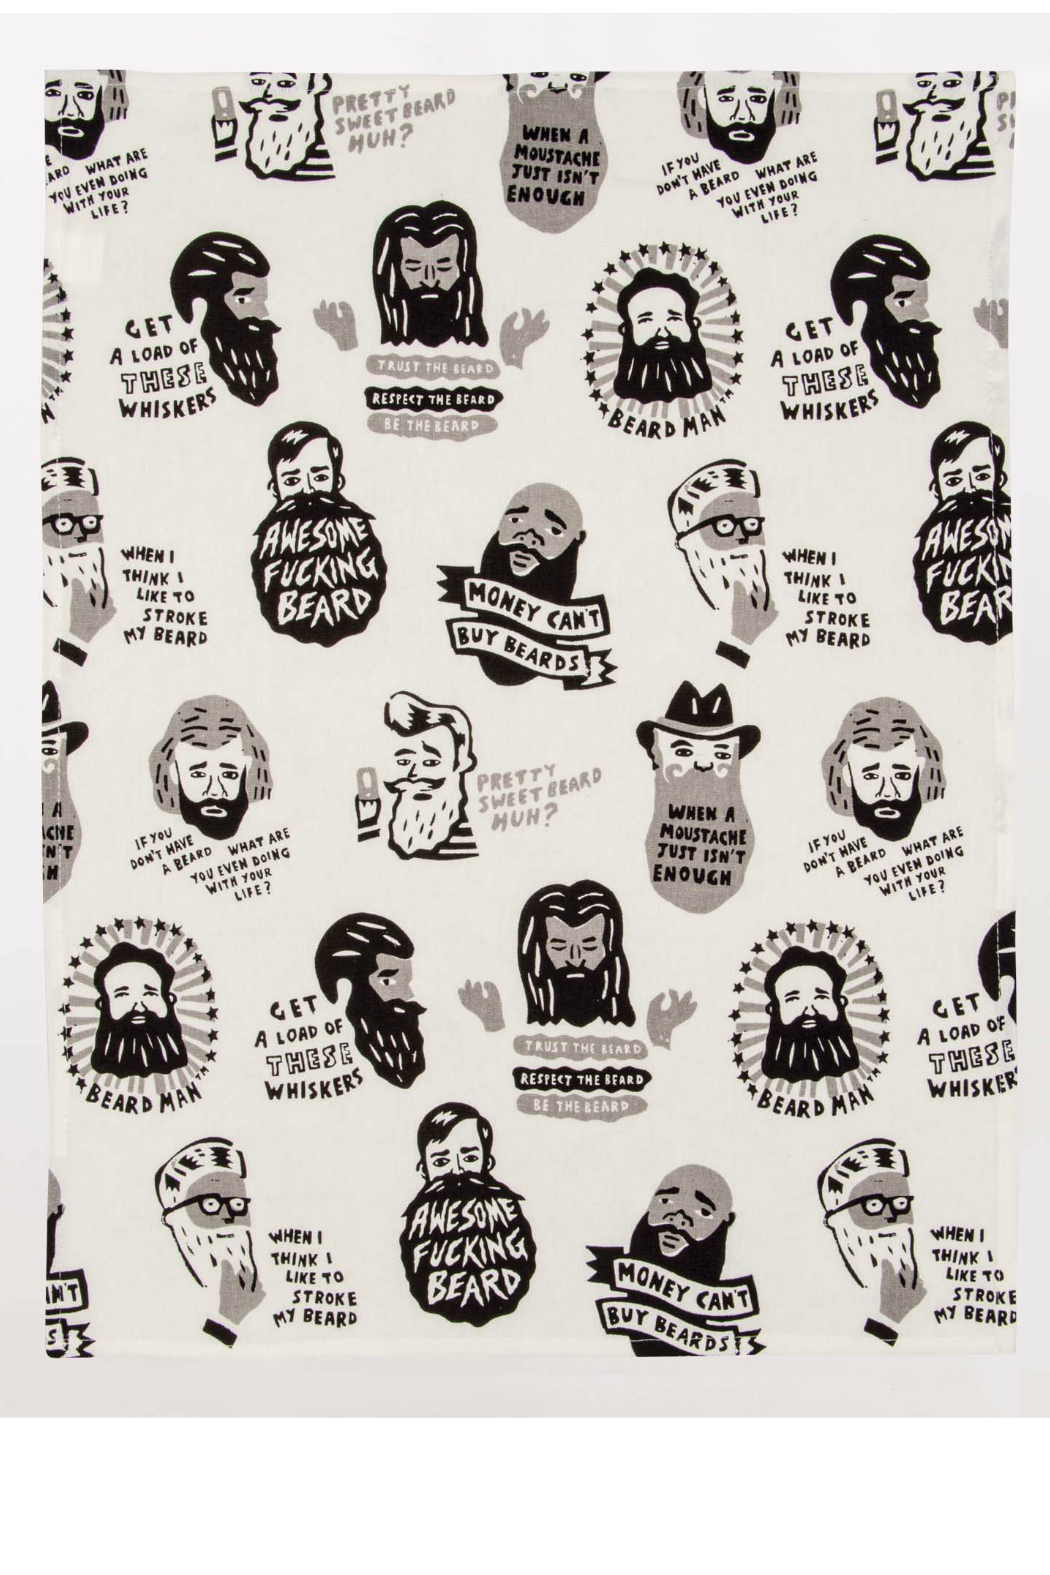 Blue Q Awesome fucking beard dish towel - Front Full Image